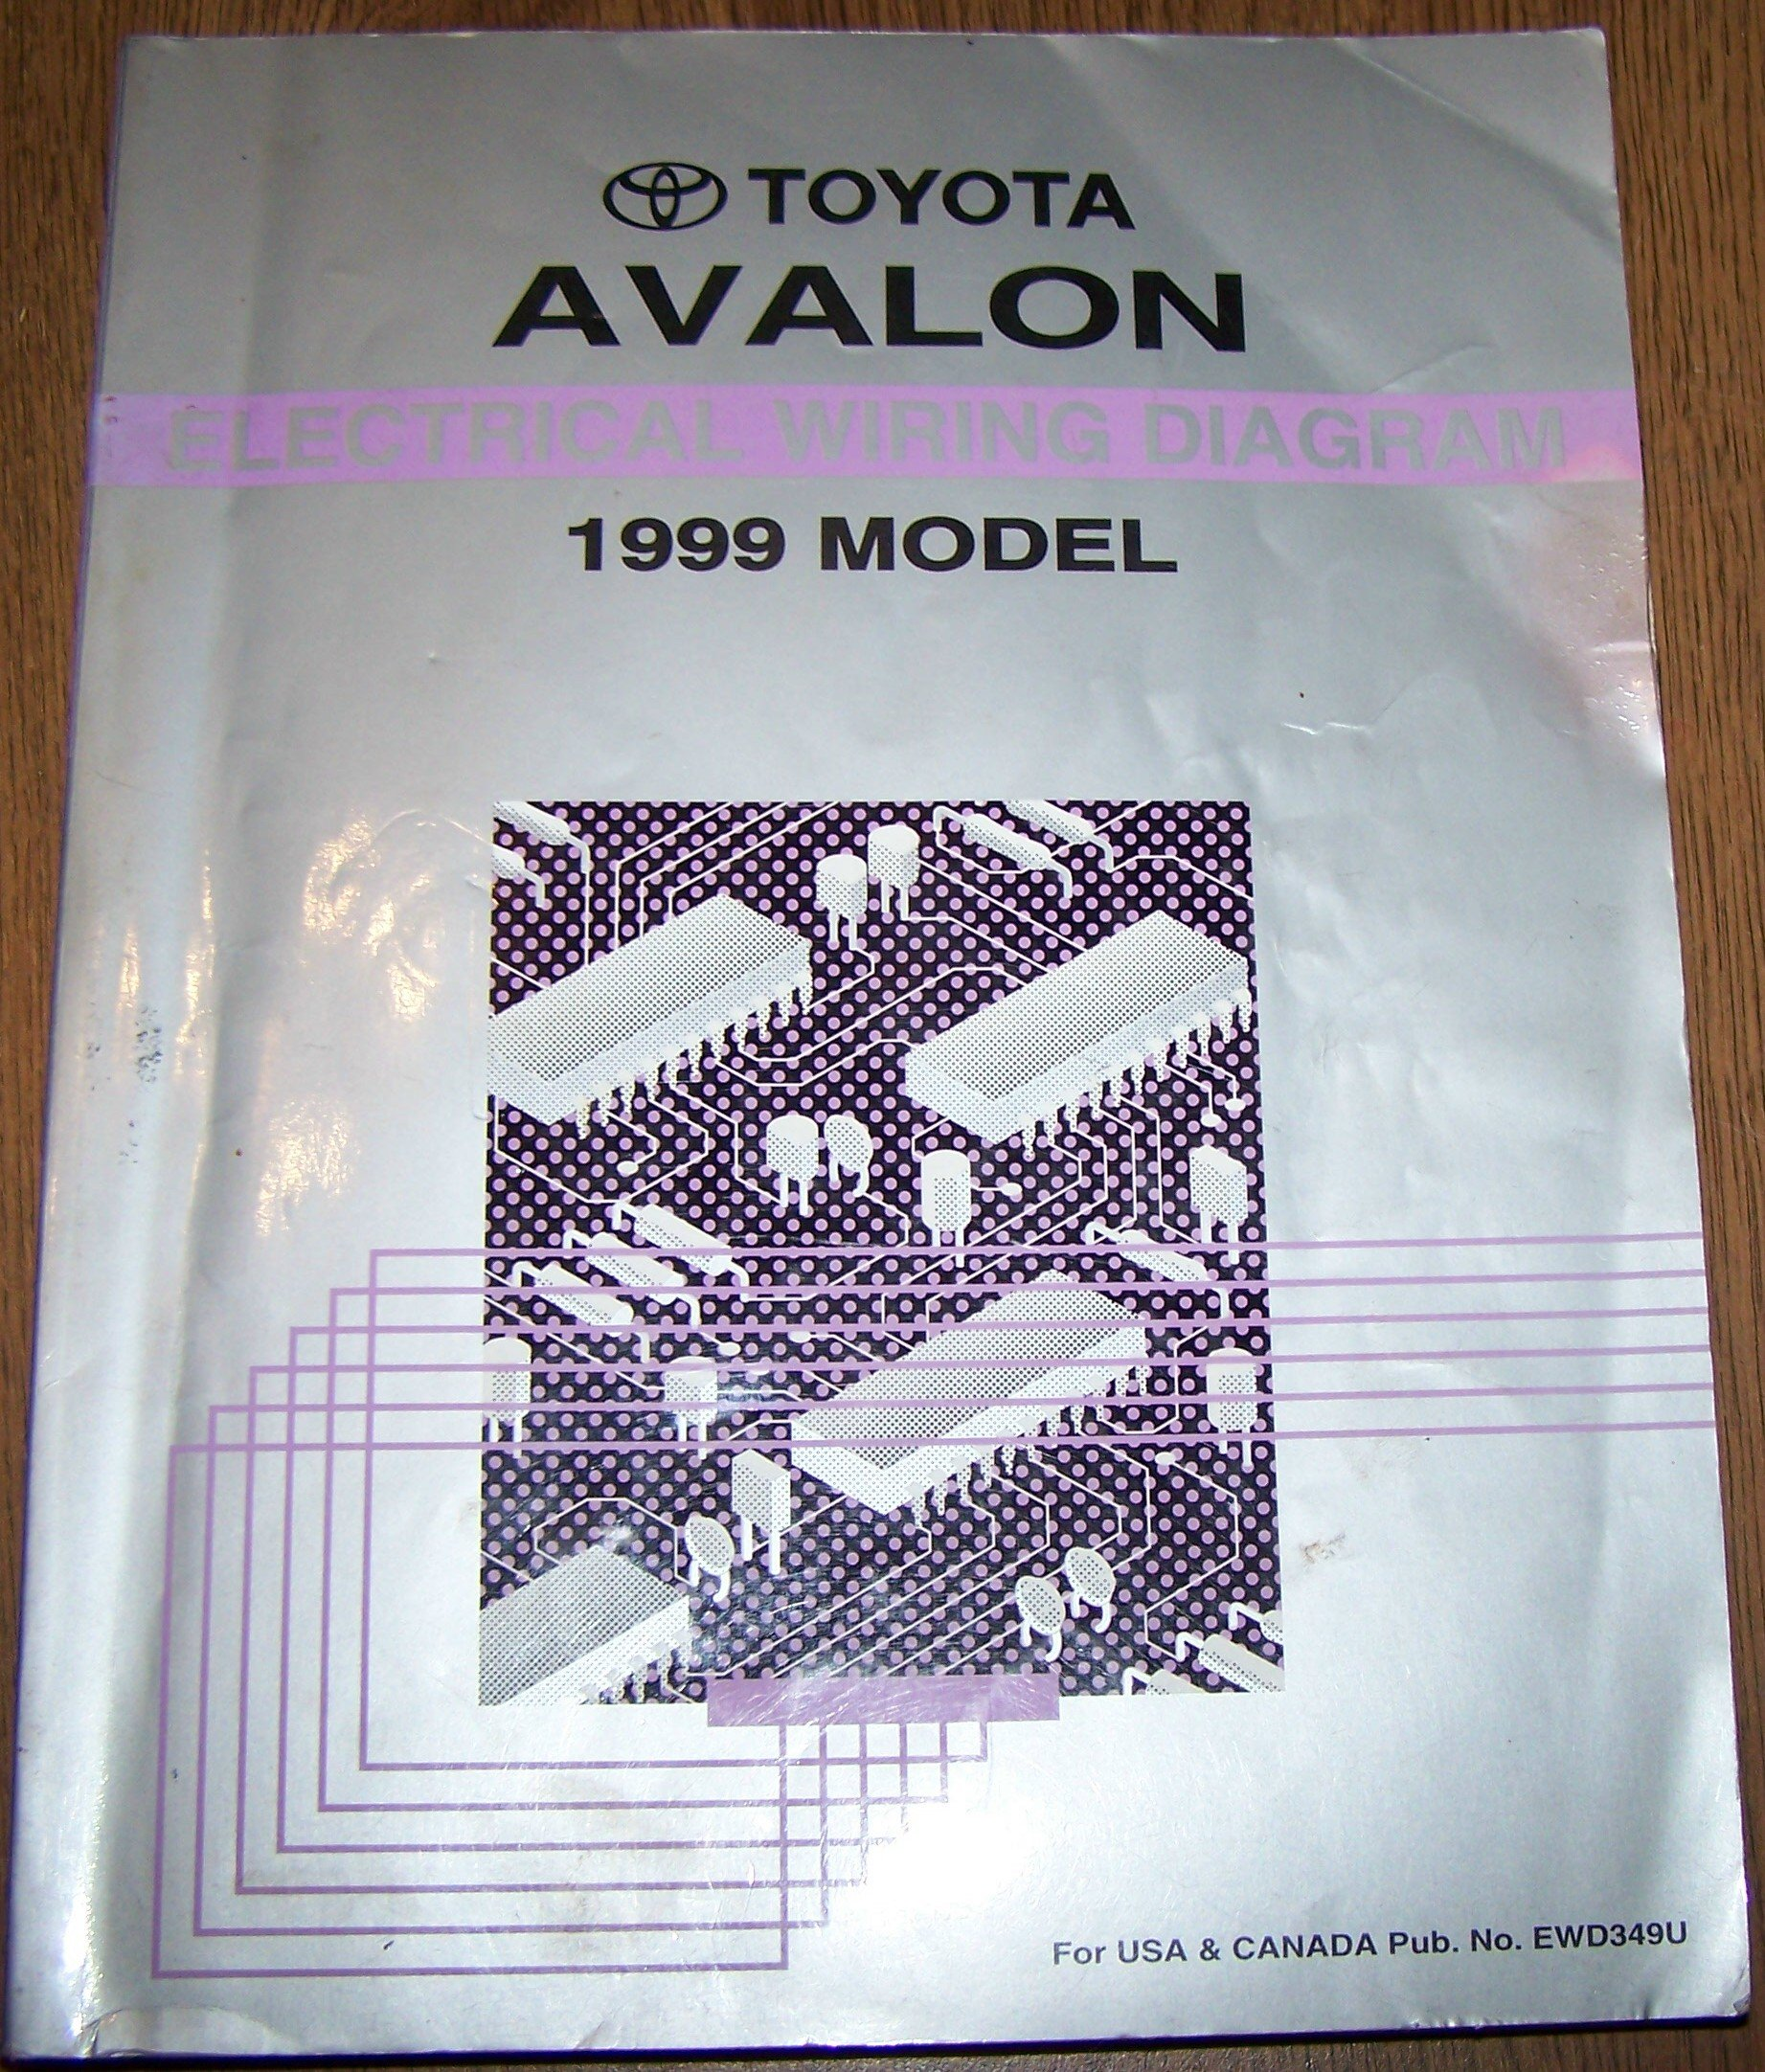 1999 toyota avalon electrical wiring diagram repair manual: toyota motor  corporation: amazon com: books